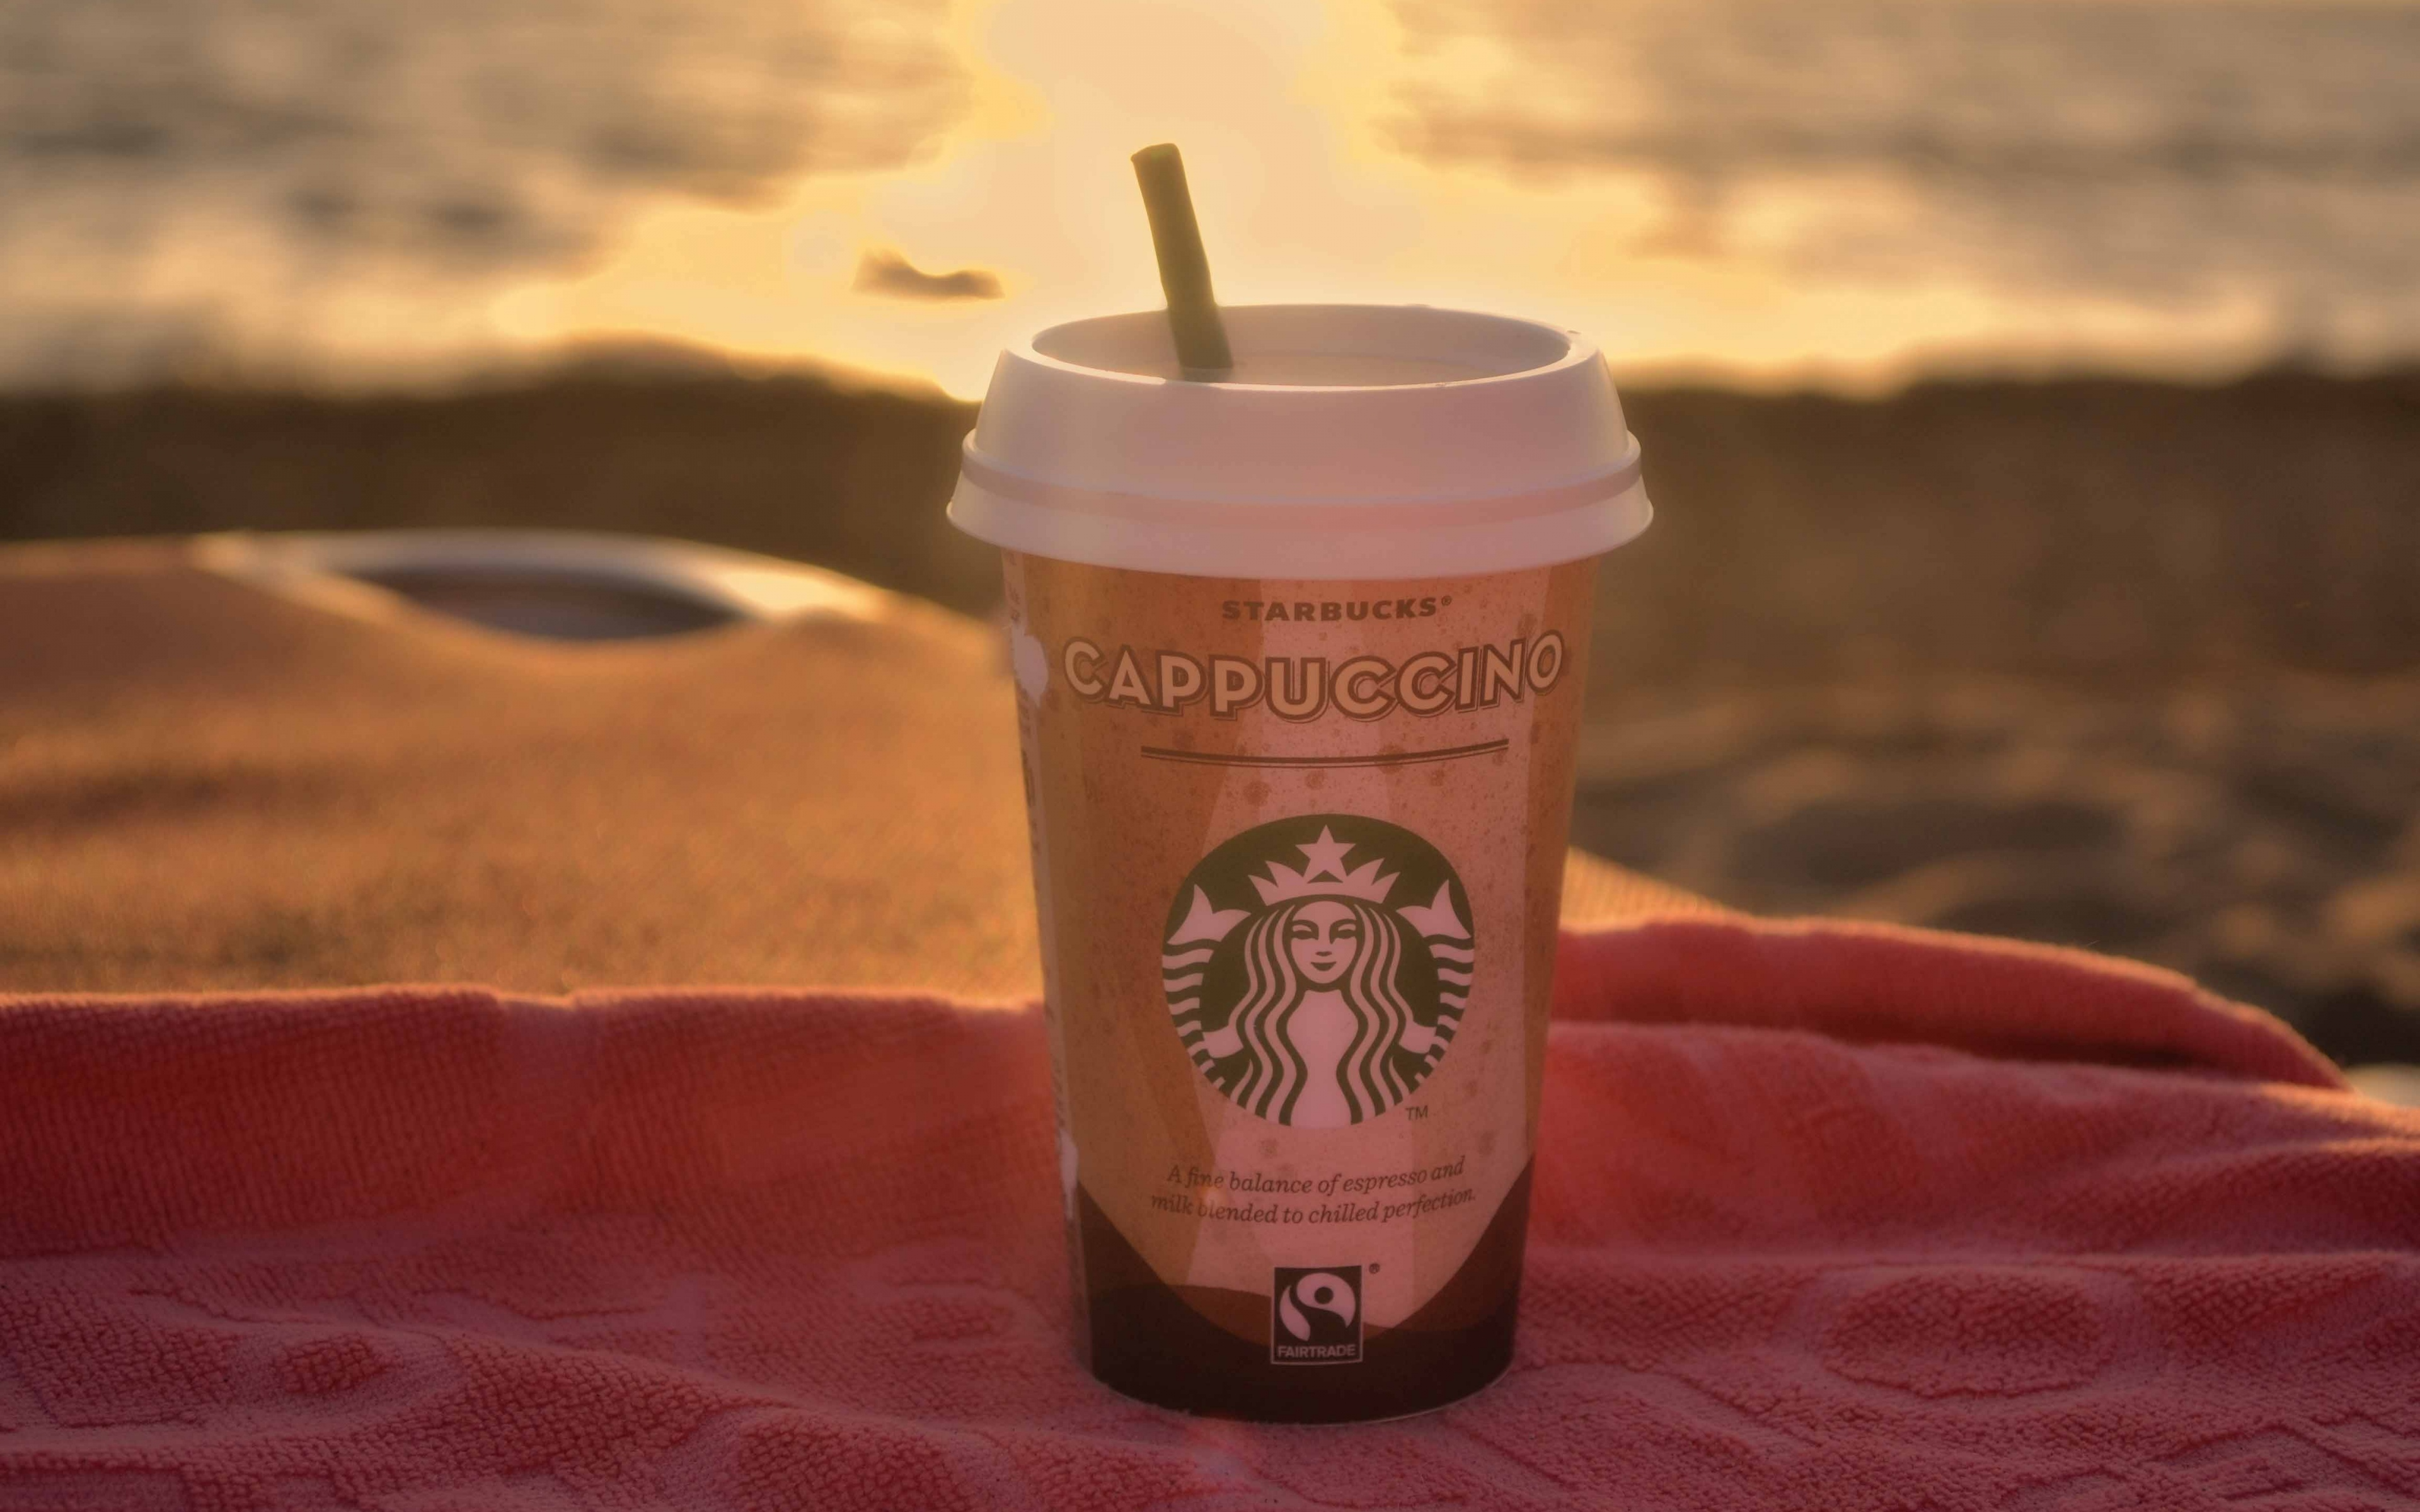 starbucks coffee cappuccino widescreen wallpaper 61869